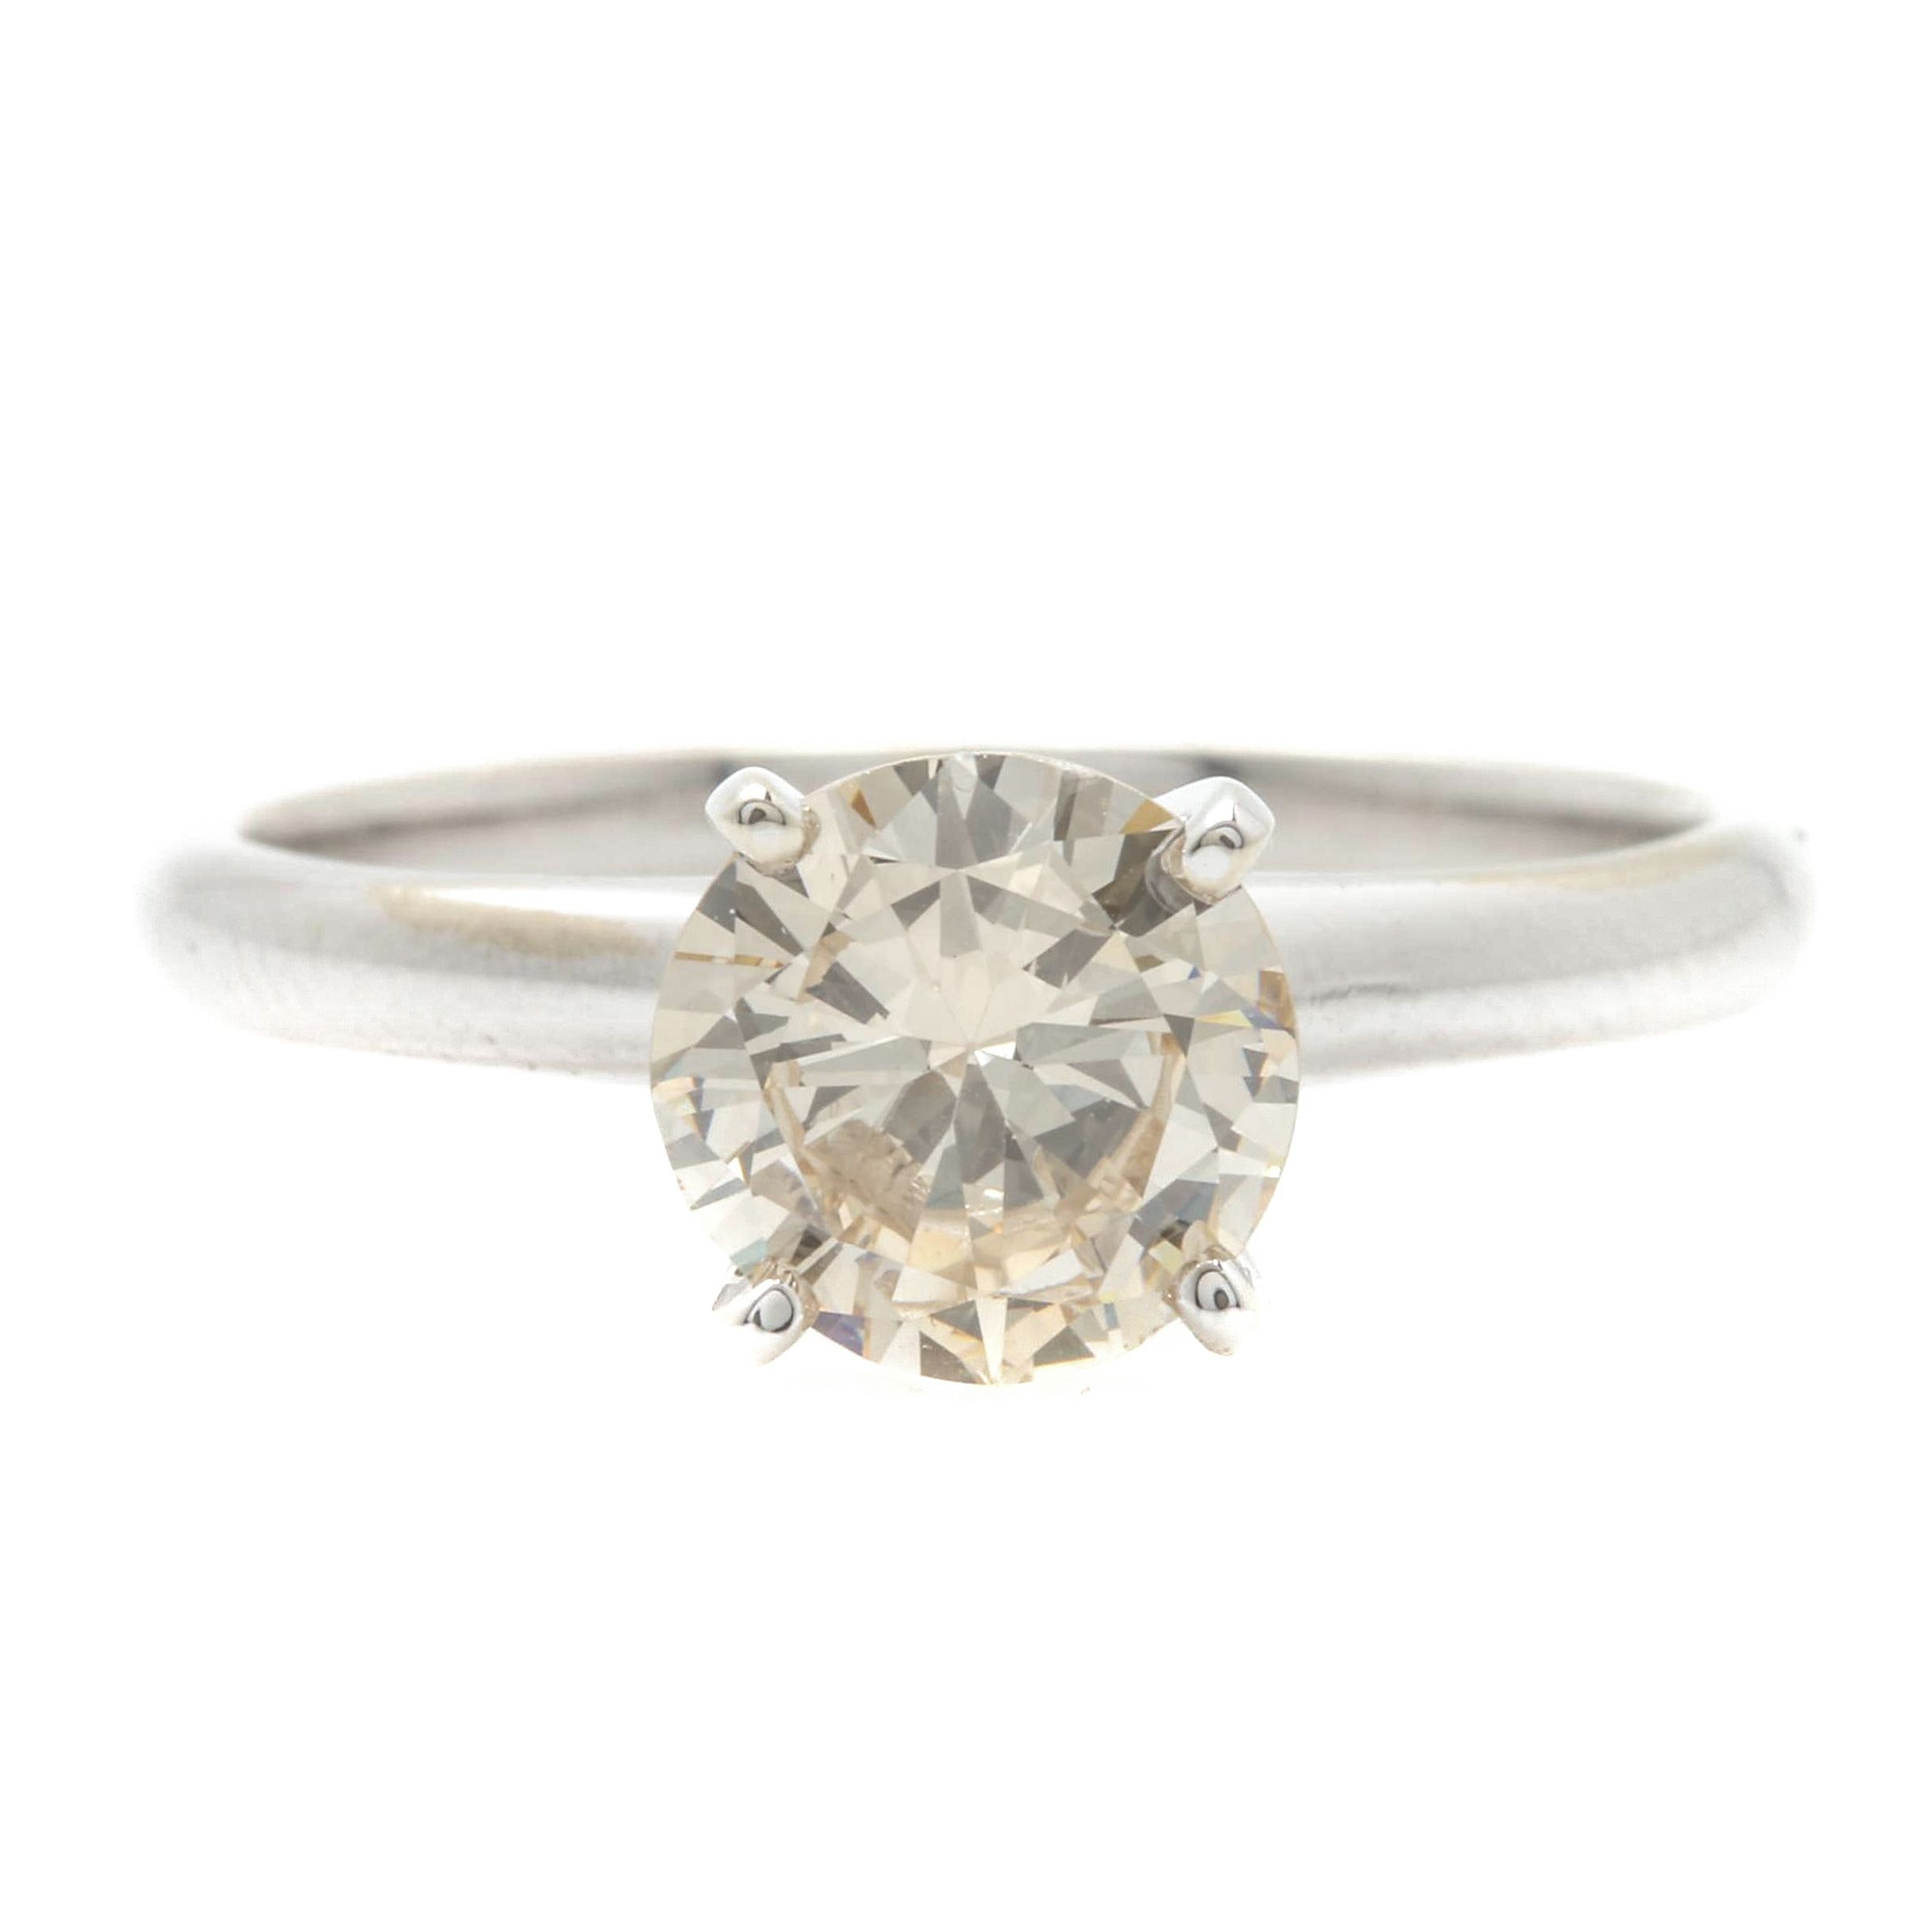 14K White Gold 1.01 CT Diamond Solitaire Ring